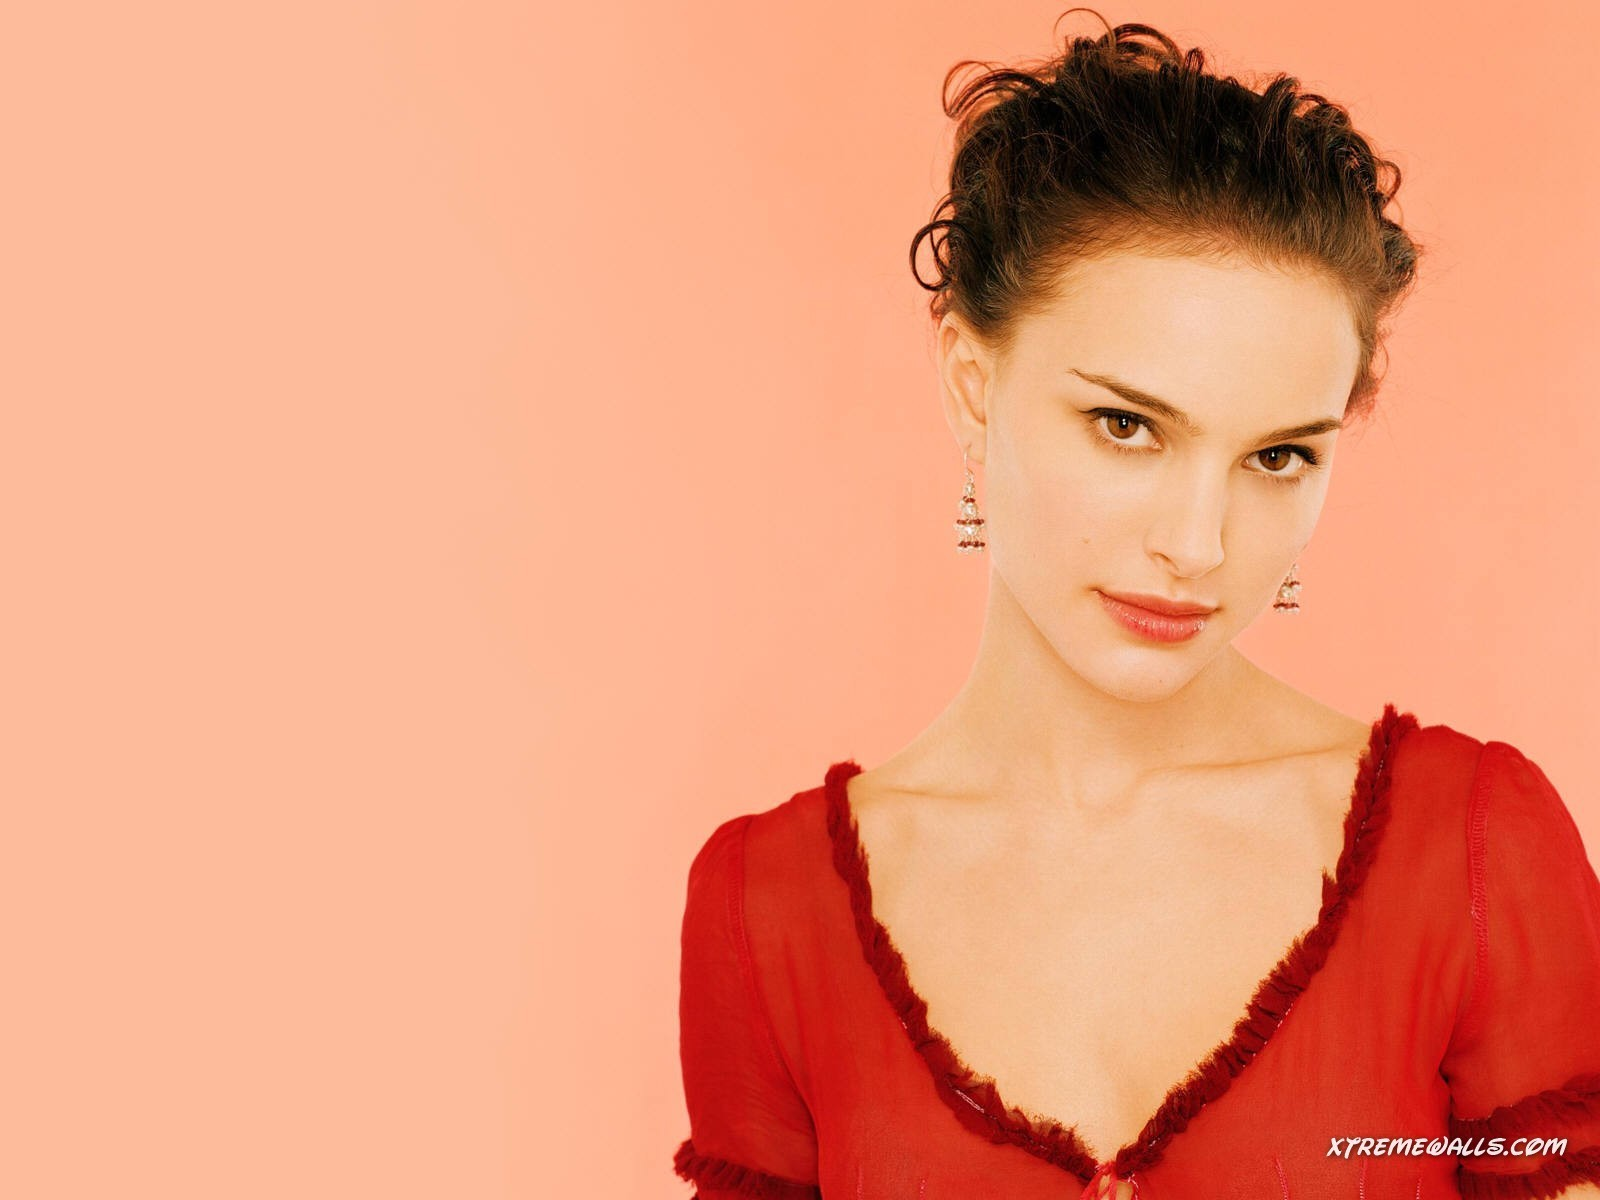 natalie portman - photo #43